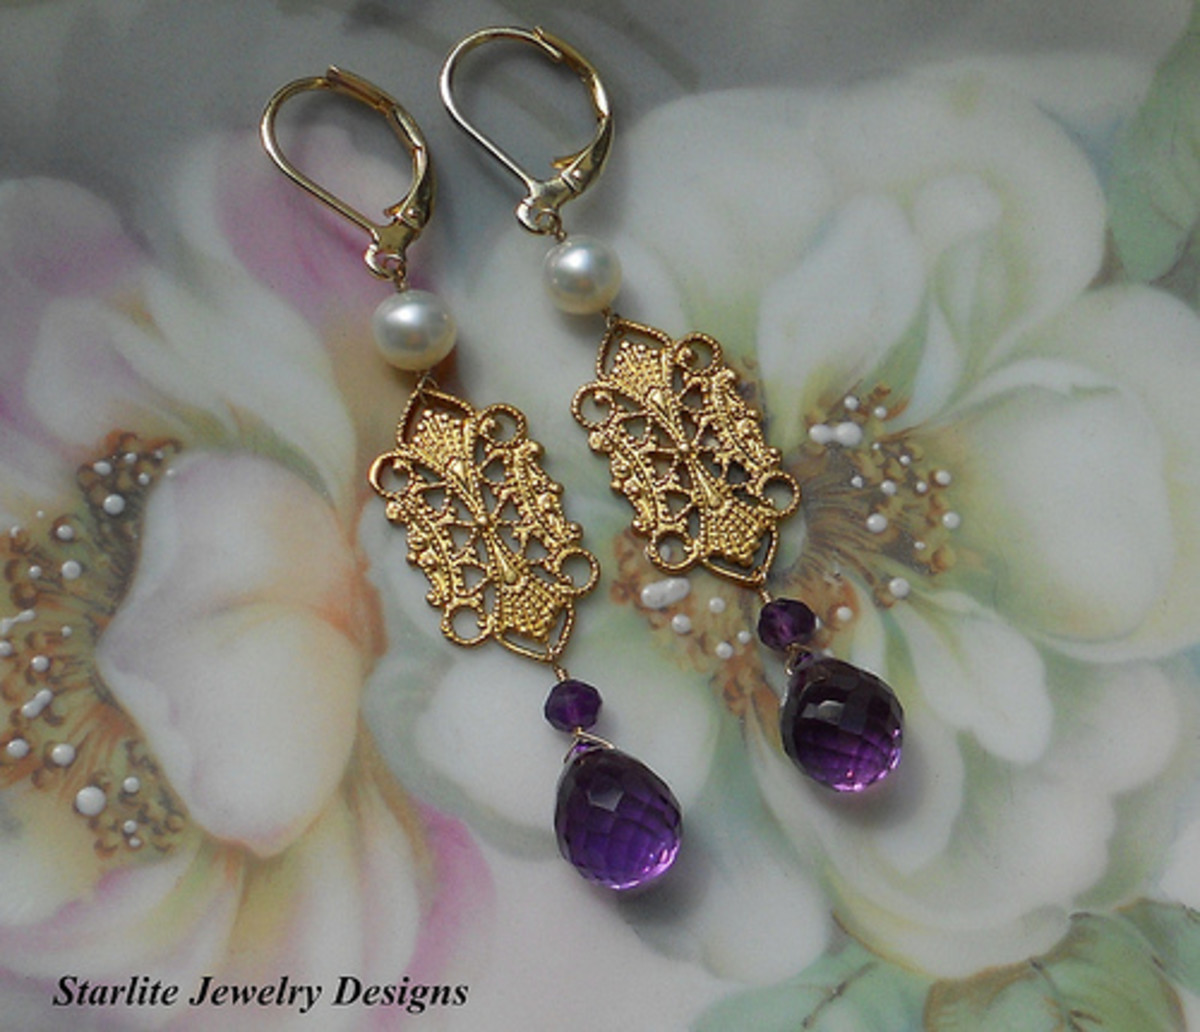 Vintage Filigree Earrings by Starlite Jewelry Designs